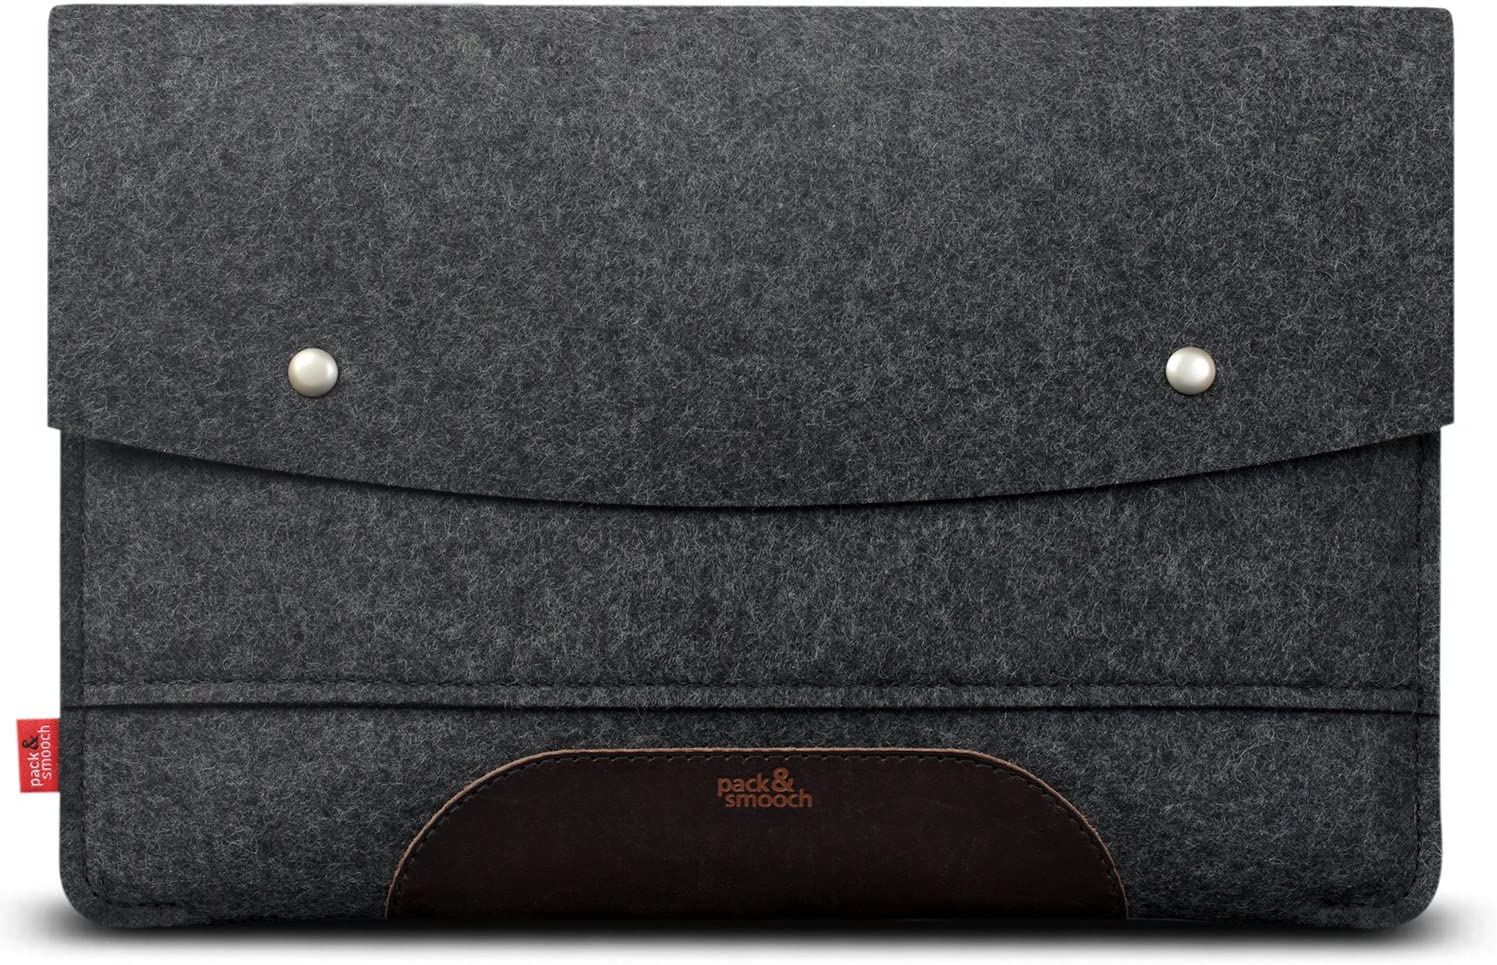 "Pack & Smooch for iPad Pro 11"" / Air 10.9"" with Smart Cover Case Sleeve Cover - 100% Wool Felt and Vegetable Tanned Leather - Dark Gray/Dark Brown"